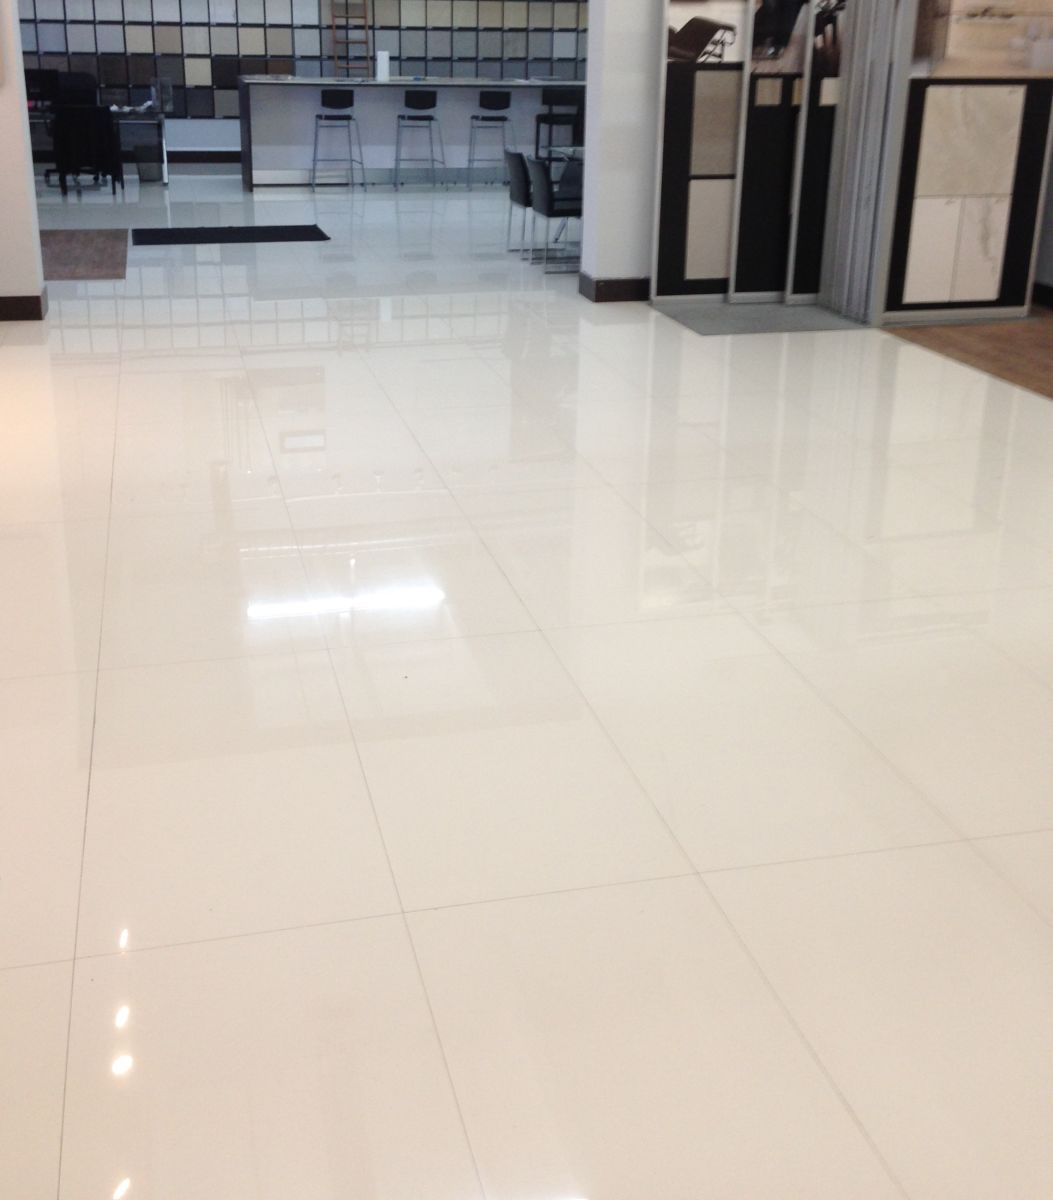 Polished Porcelain Tile 32x32 Moderni White Rectified Marble Look Ebay